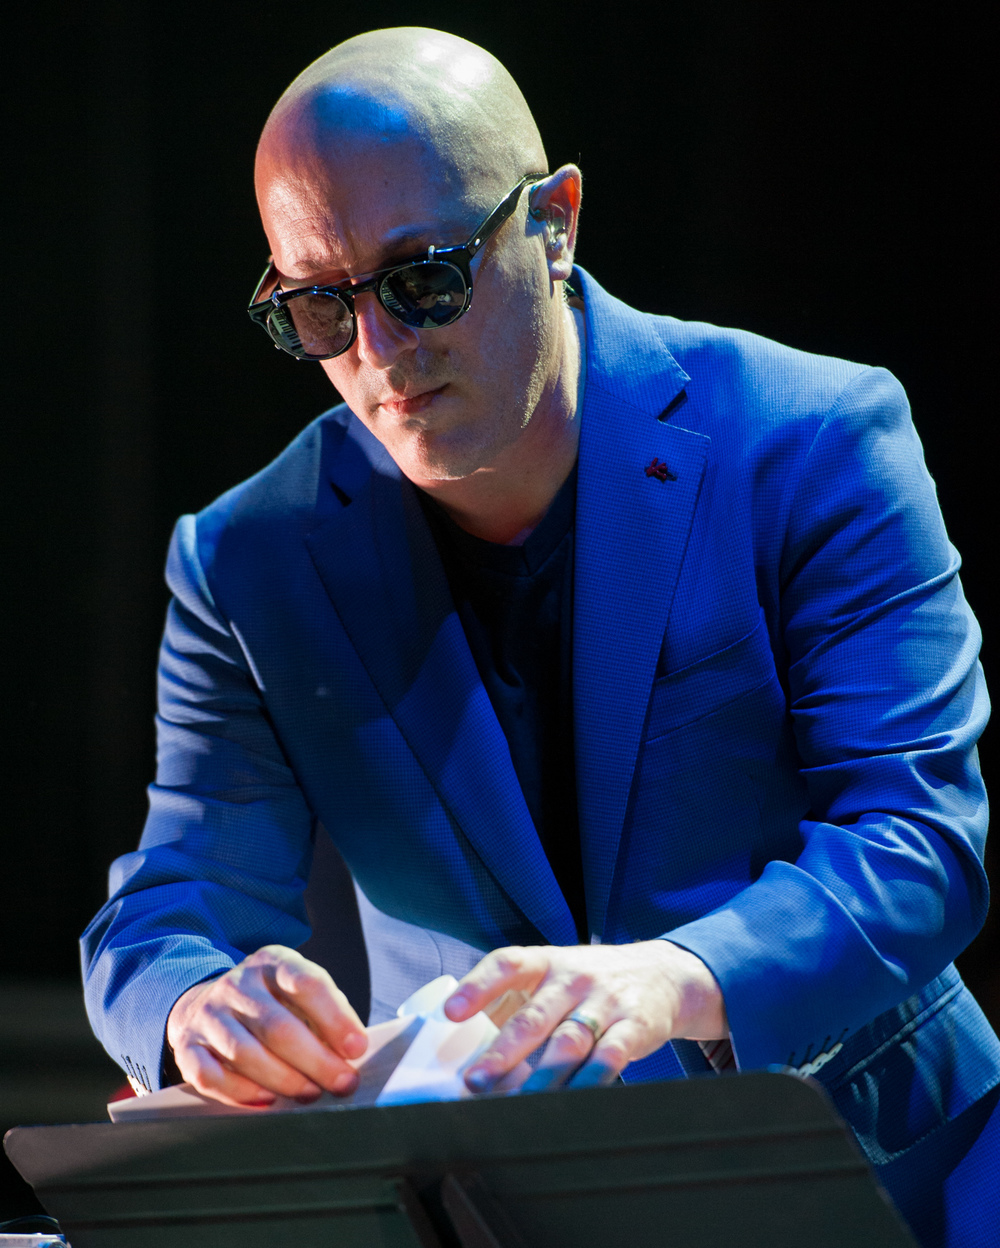 Maynard James Keenan of A Perfect Circle @ The Greek Theatre | 2014